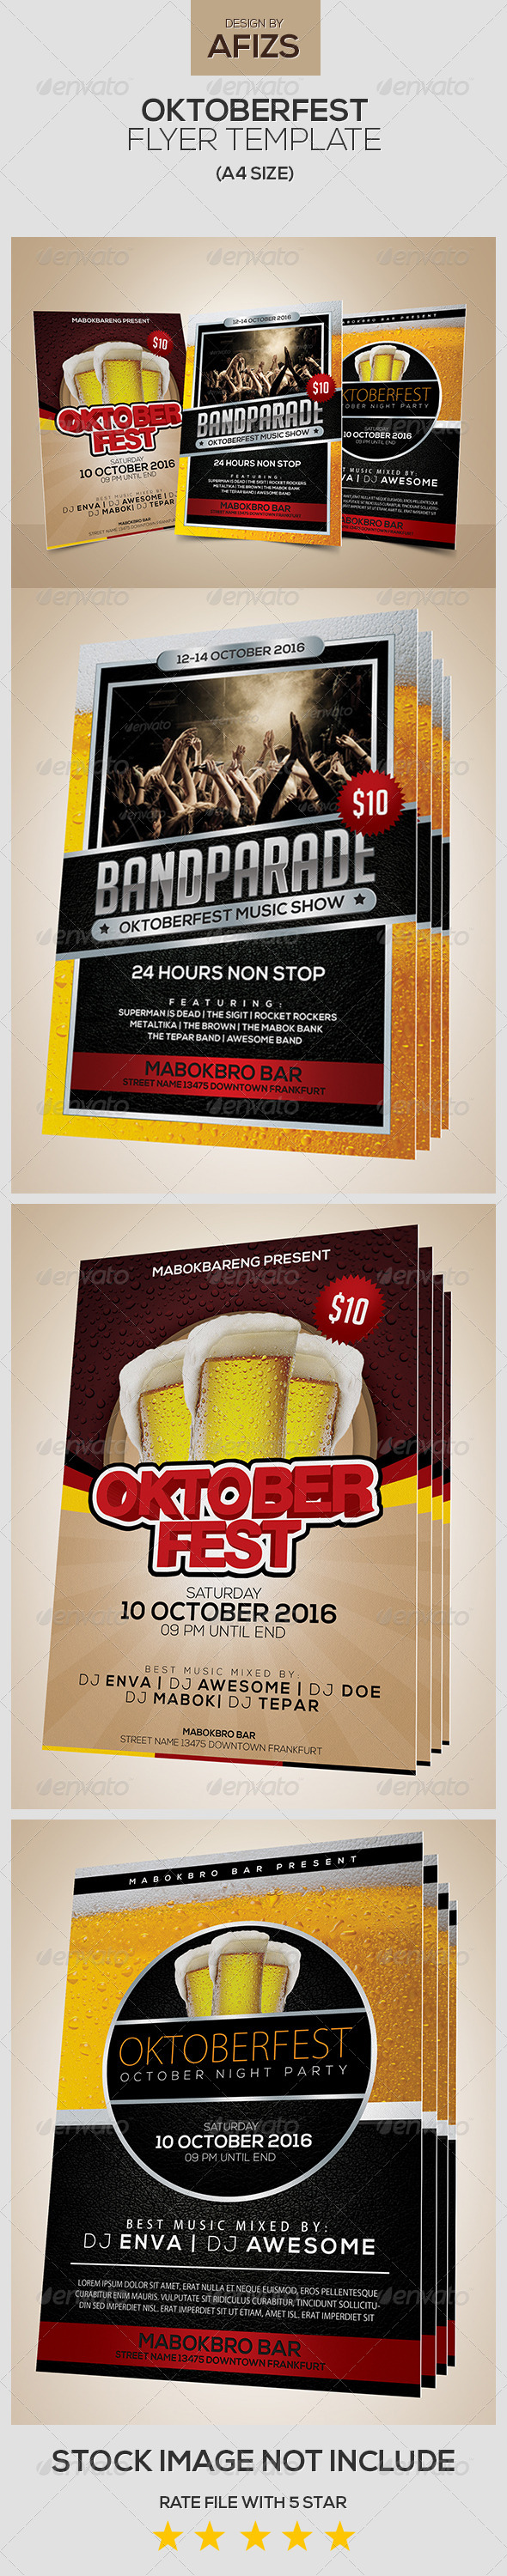 GraphicRiver Oktoberfest Event Flyer 5617170